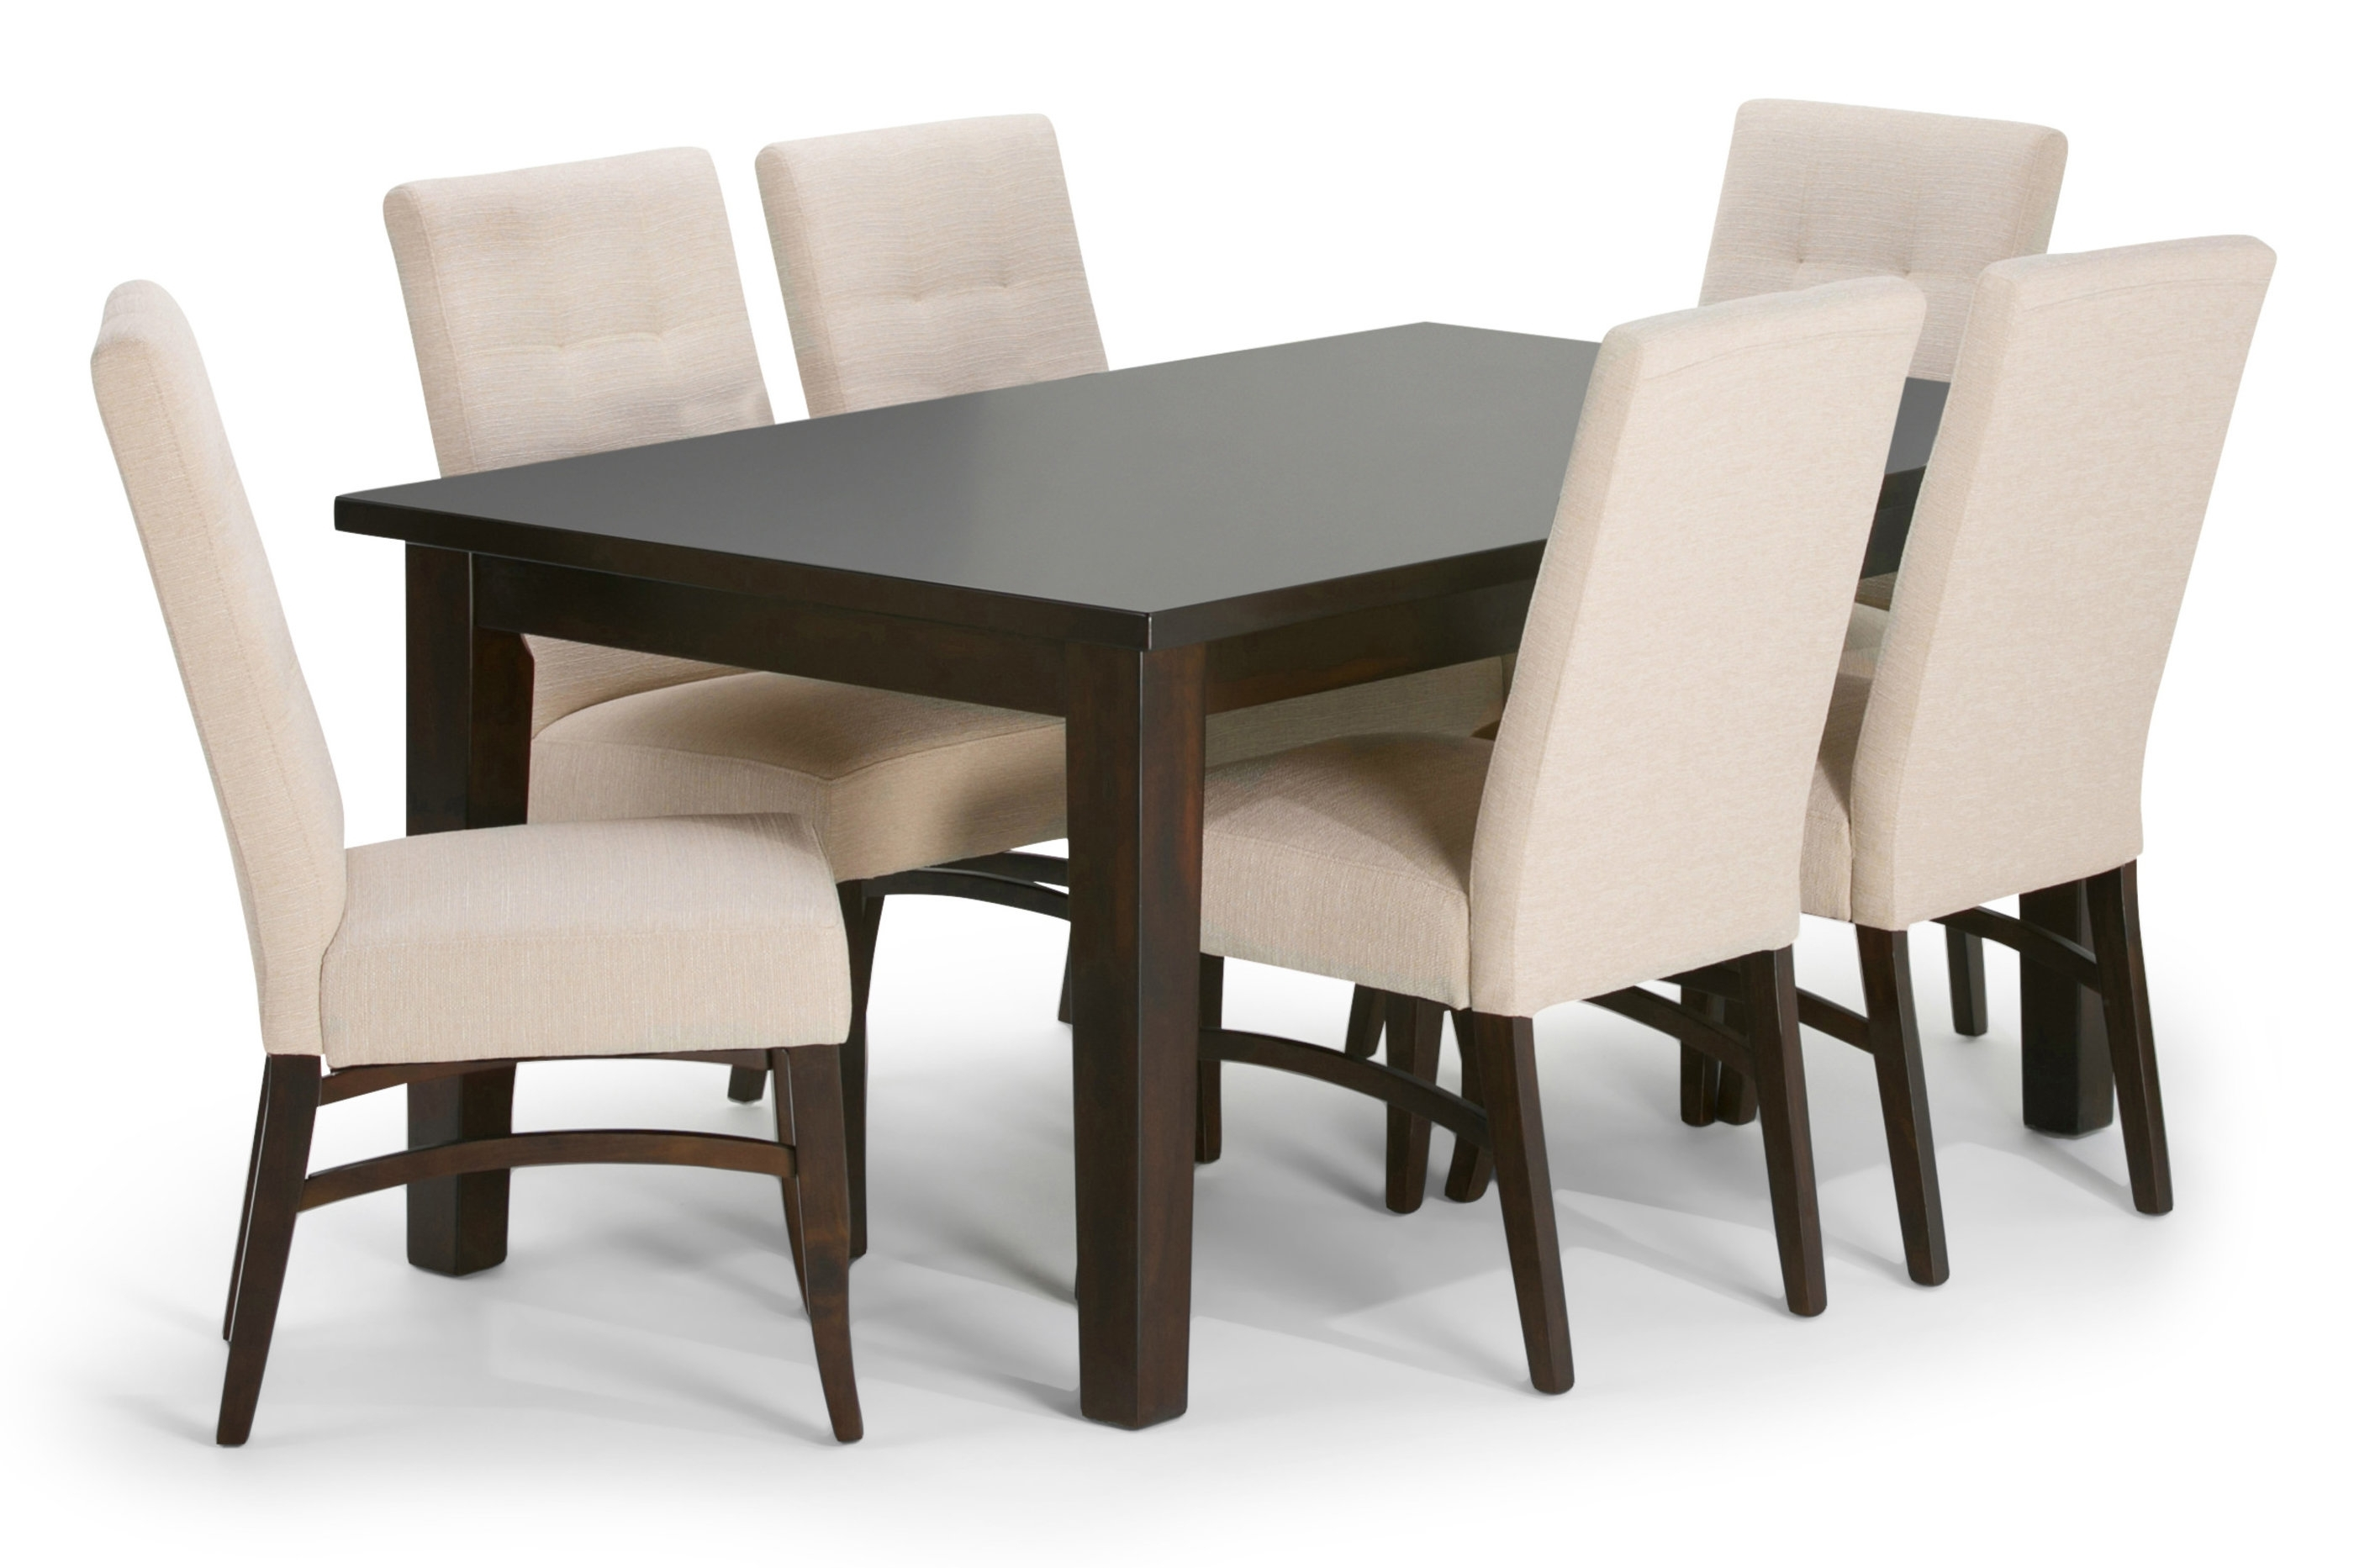 Simpli Home Ezra 7 Piece Dining Set | Wayfair Intended For Most Recently Released Walden 7 Piece Extension Dining Sets (Image 13 of 20)